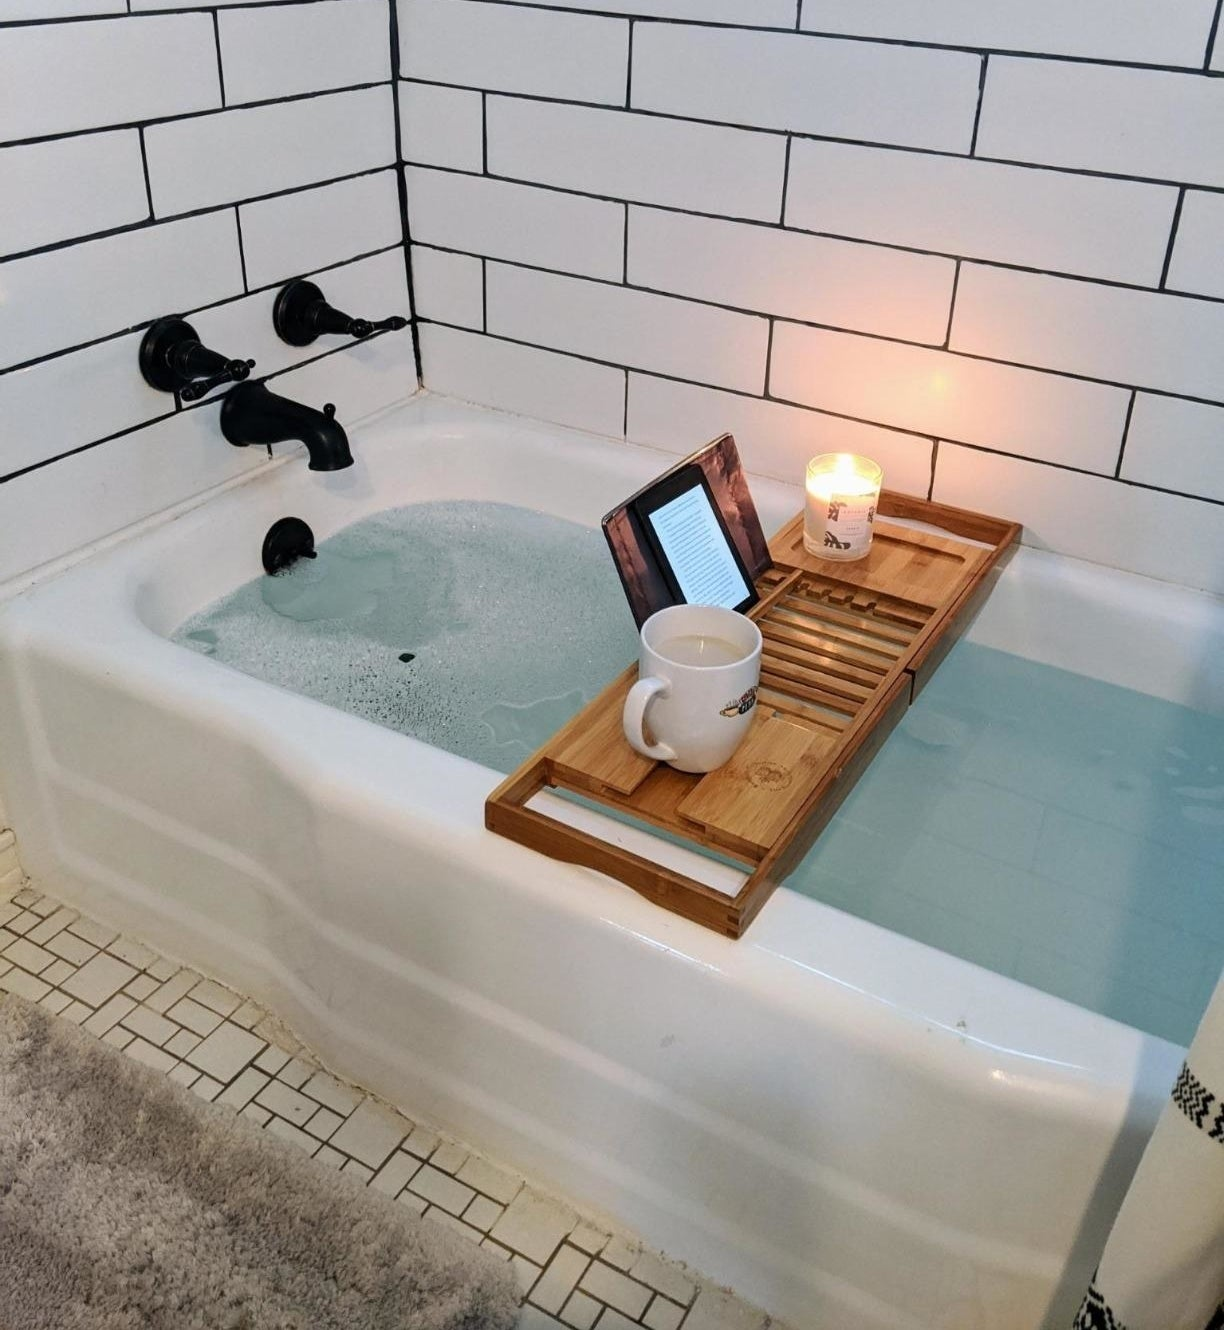 wooden caddy stretched over a tub holding a propped-up kindle, a candle, and a mug